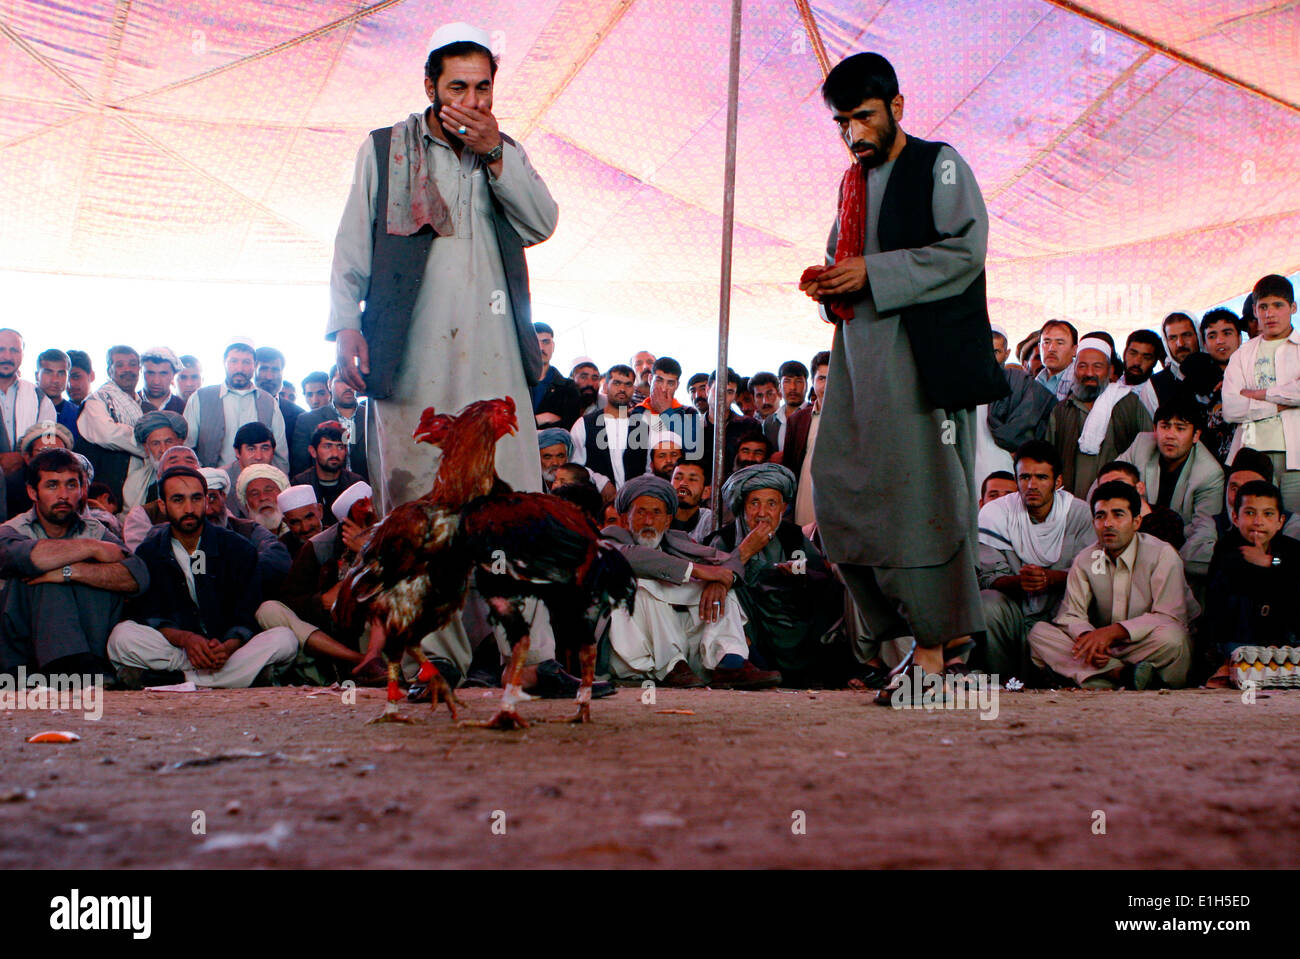 Kabul, Afghanistan, 2008. Cook fighting, a popular sport at Babul-garden in the Afghani capital. - Stock Image